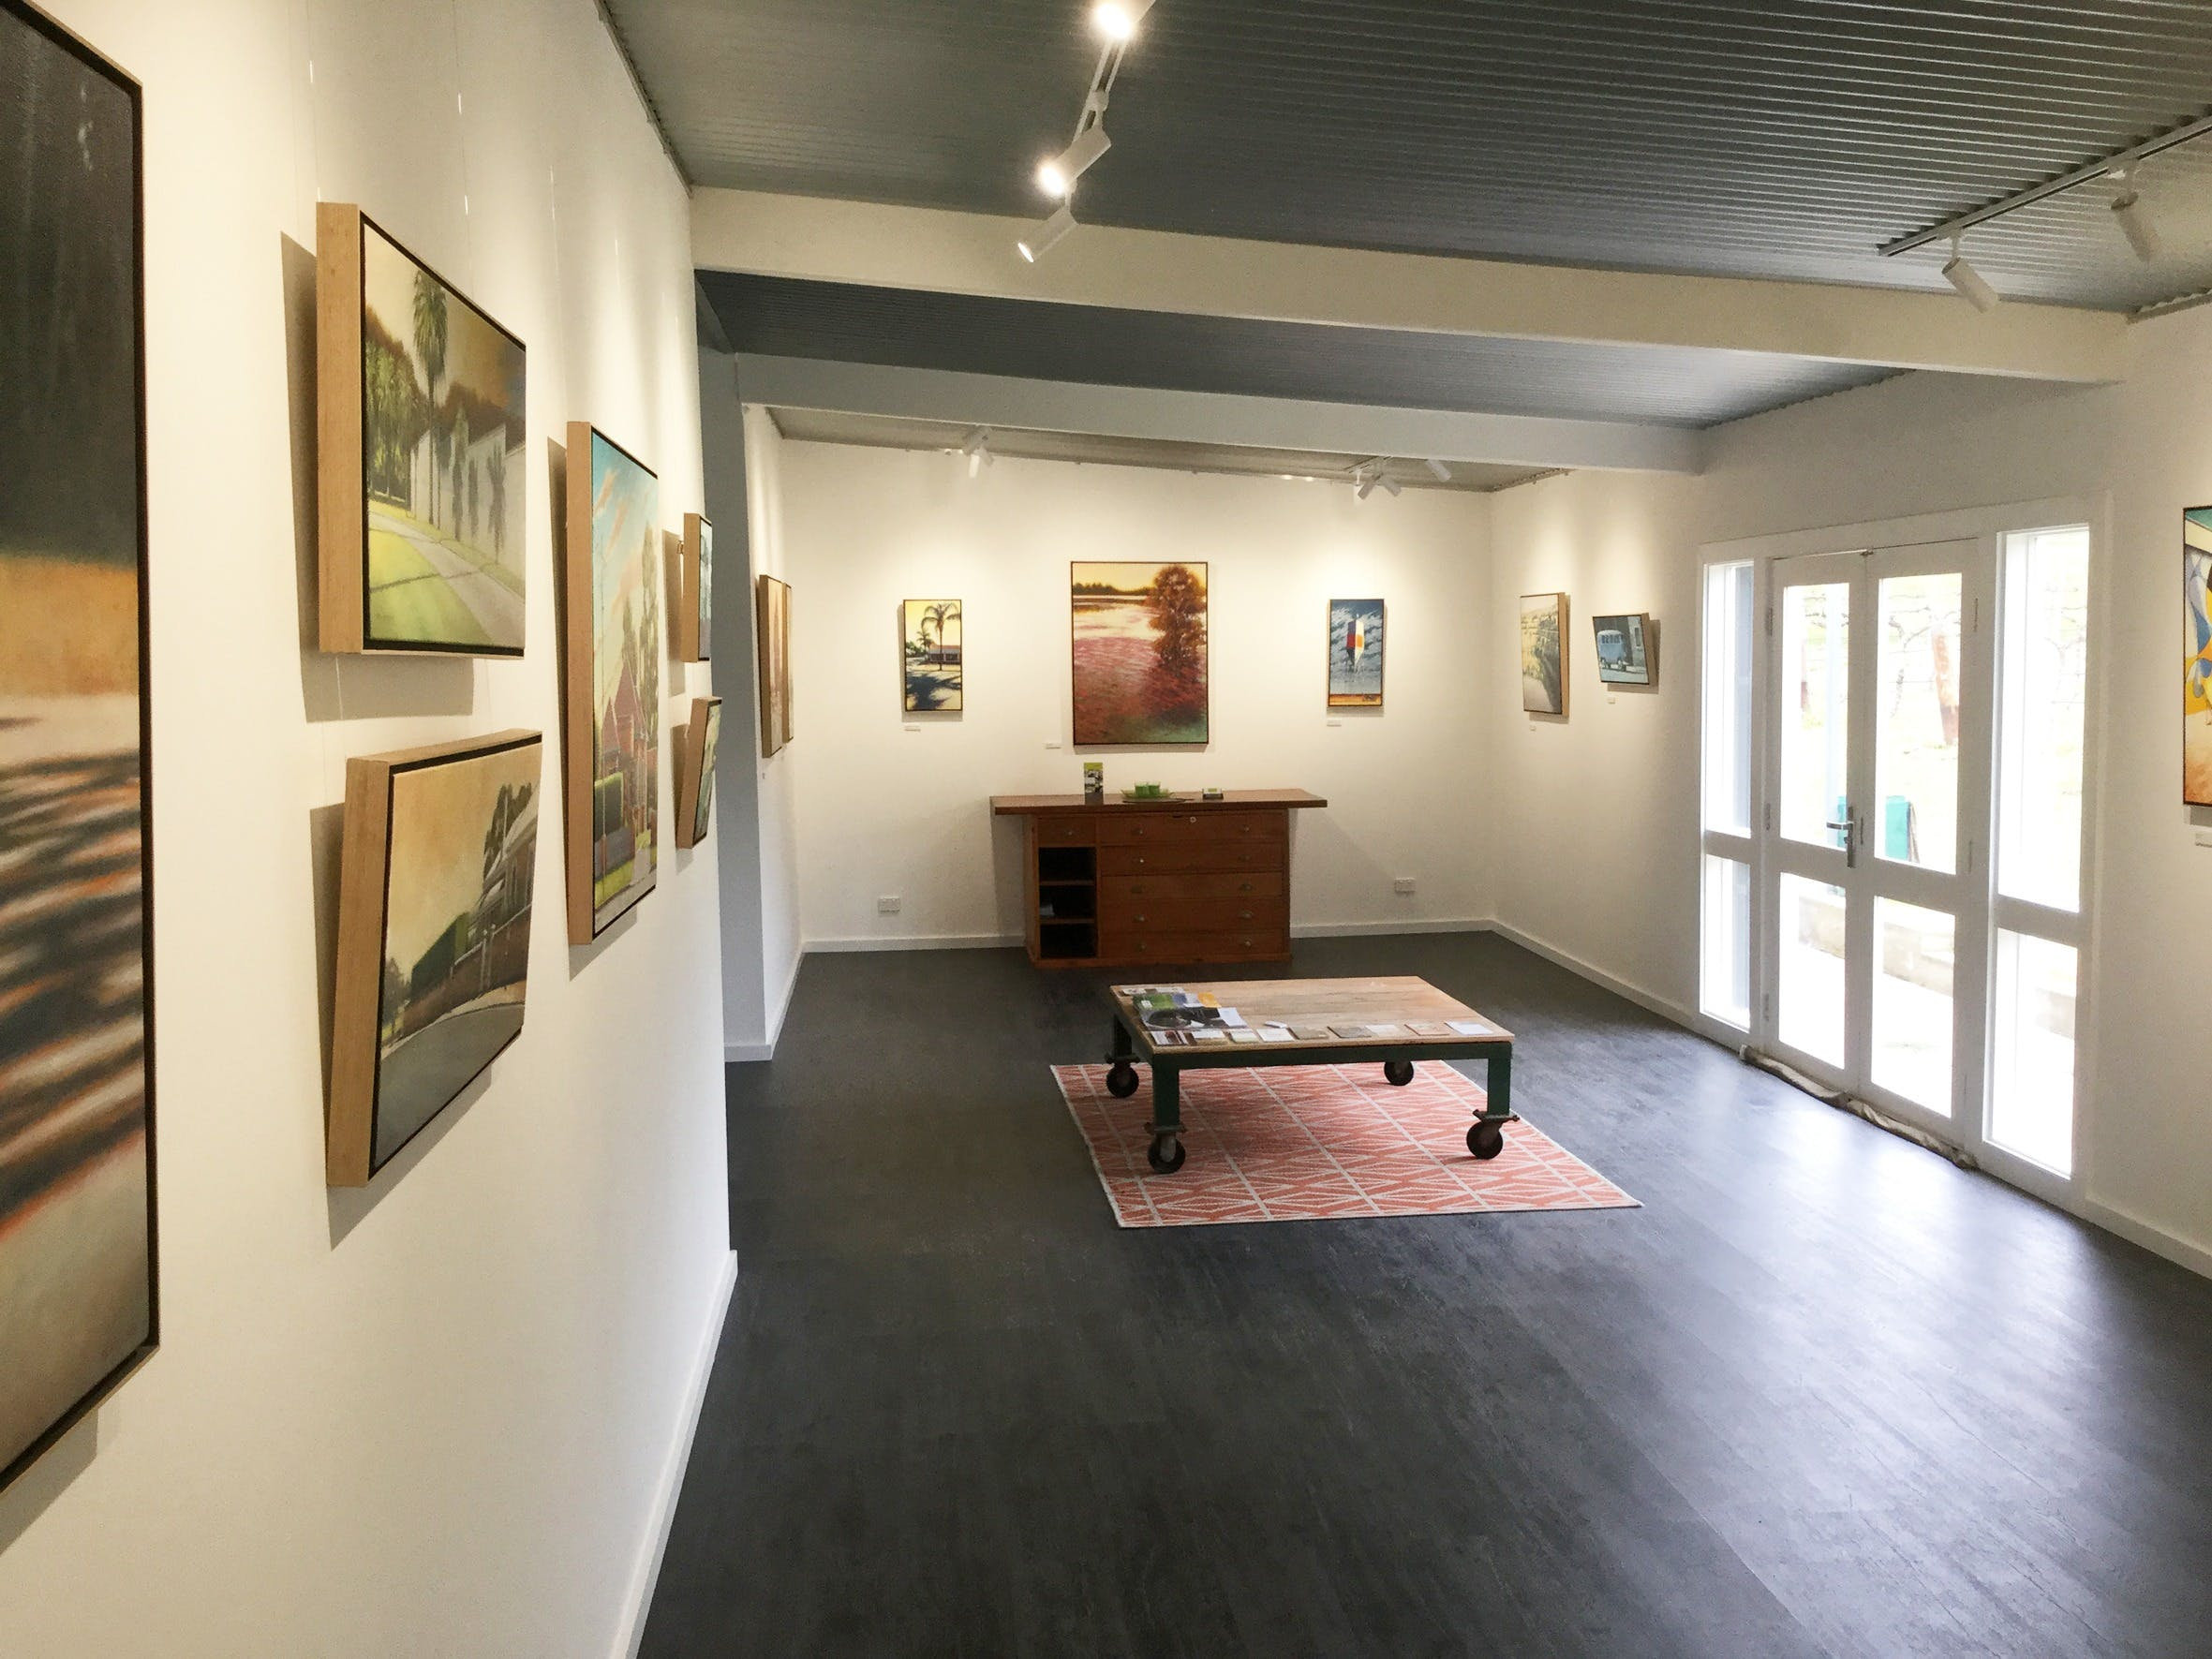 Studio Meadows Gallery - Wagga Wagga Accommodation